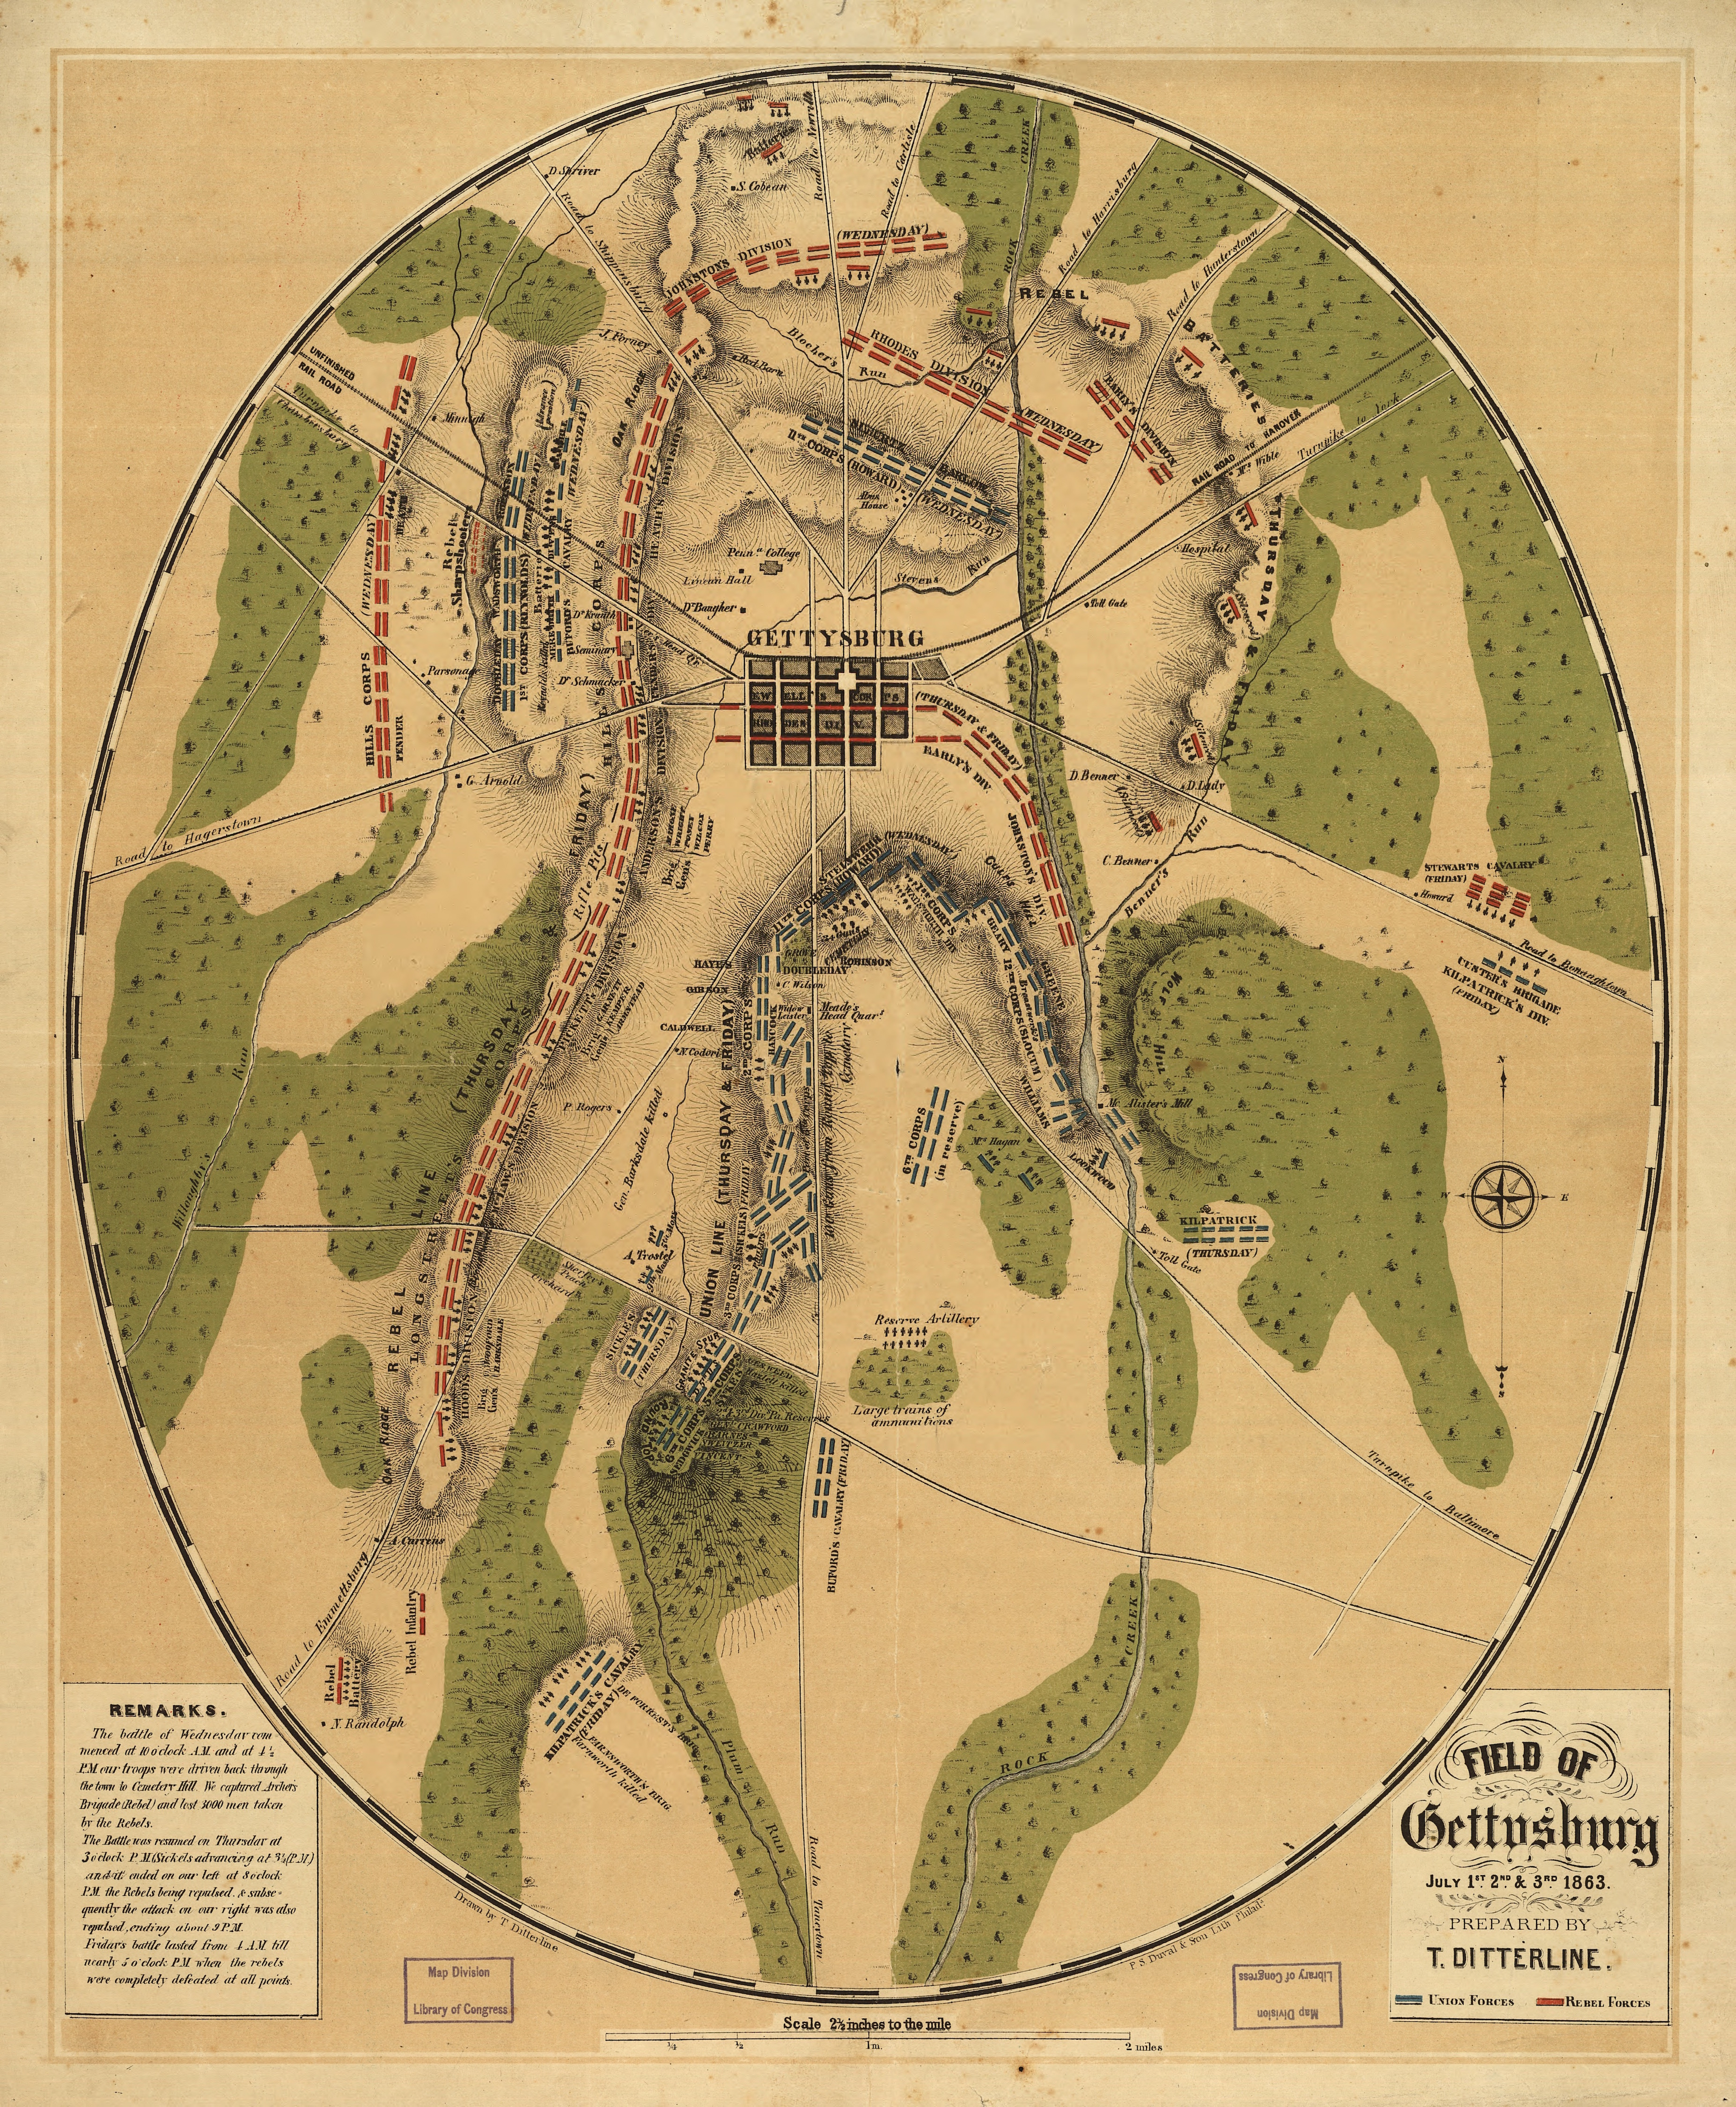 Gettysburg Topographic Map.A Map Of Military Action During The Battle Of Gettysburg July 1 3